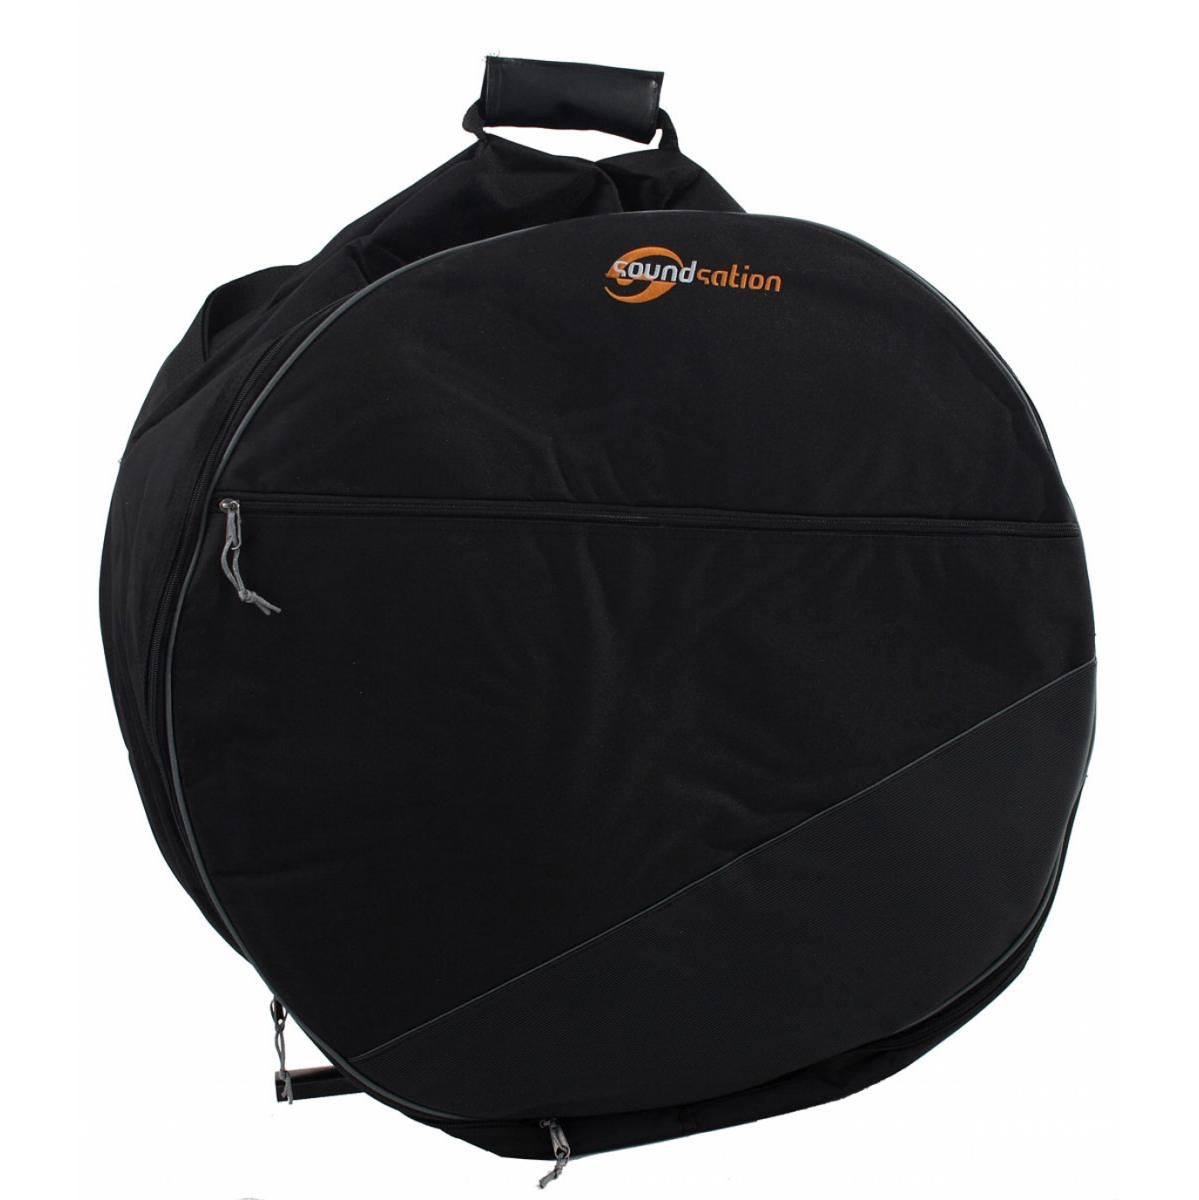 Soundsation Borsa per timpano 16""